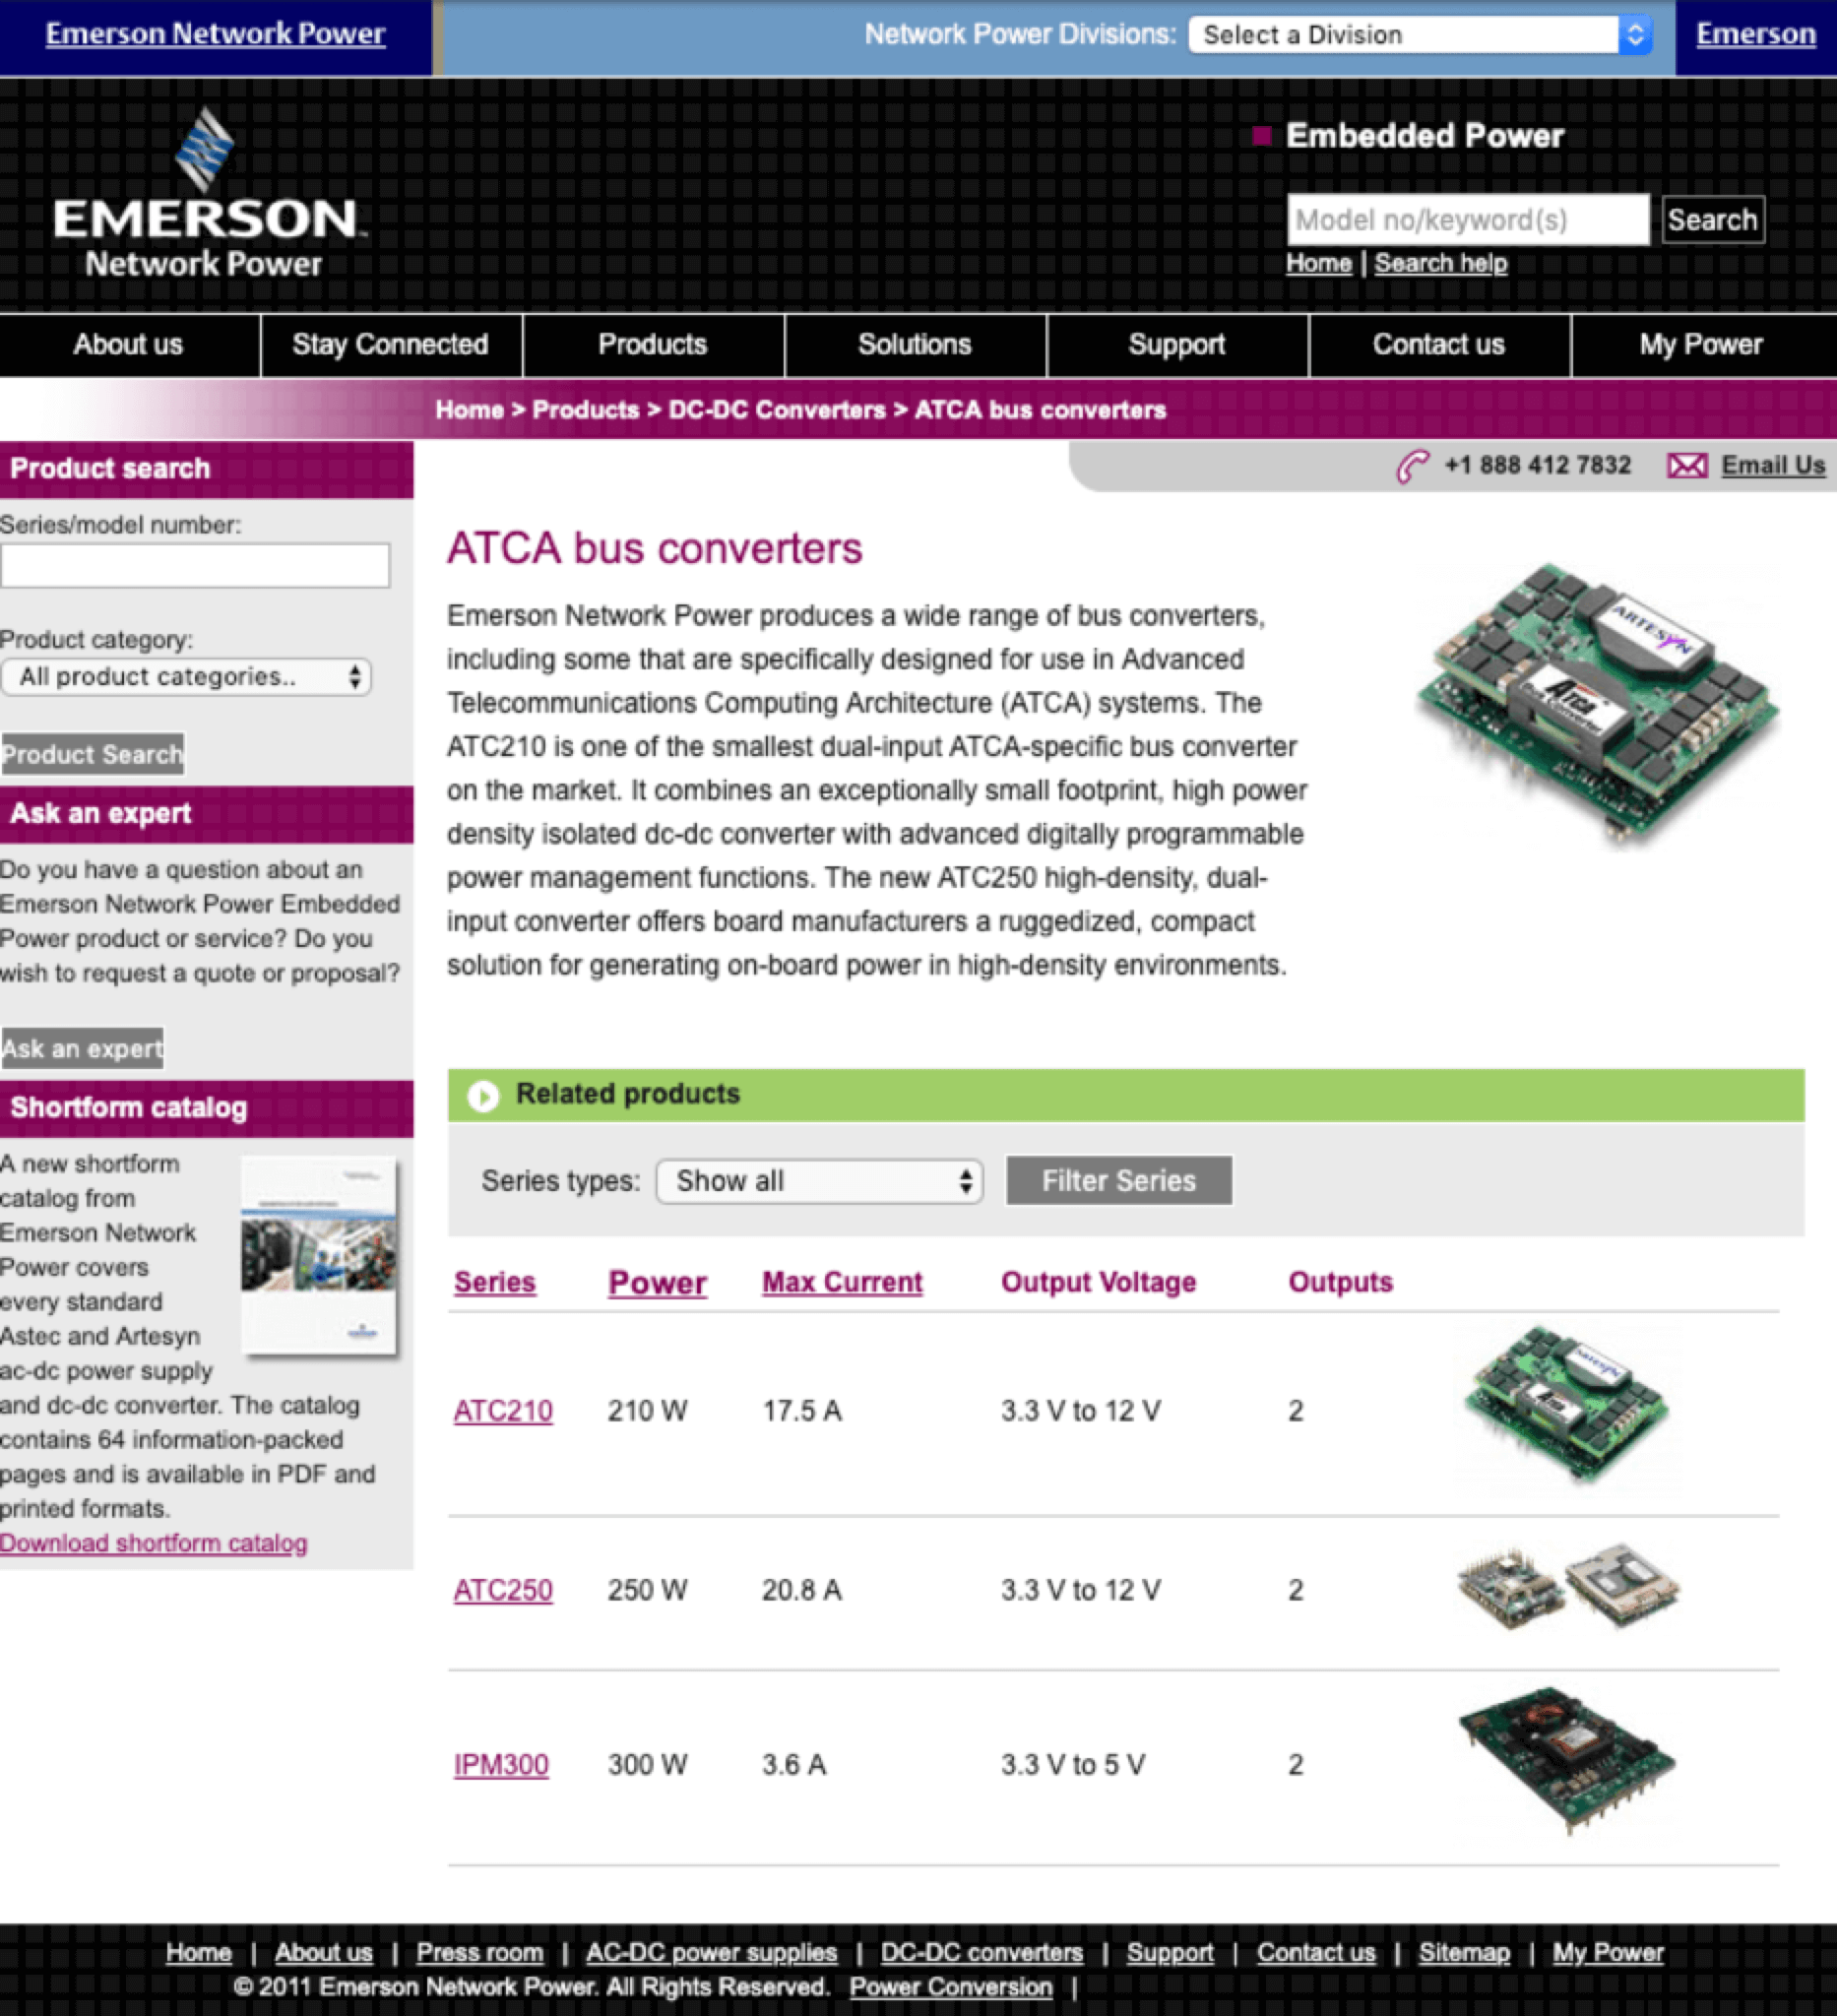 Emerson-AC-DC-Power-Supplies-DC-DC-Converters-Website-Design-ATCA-Page-PC1-1